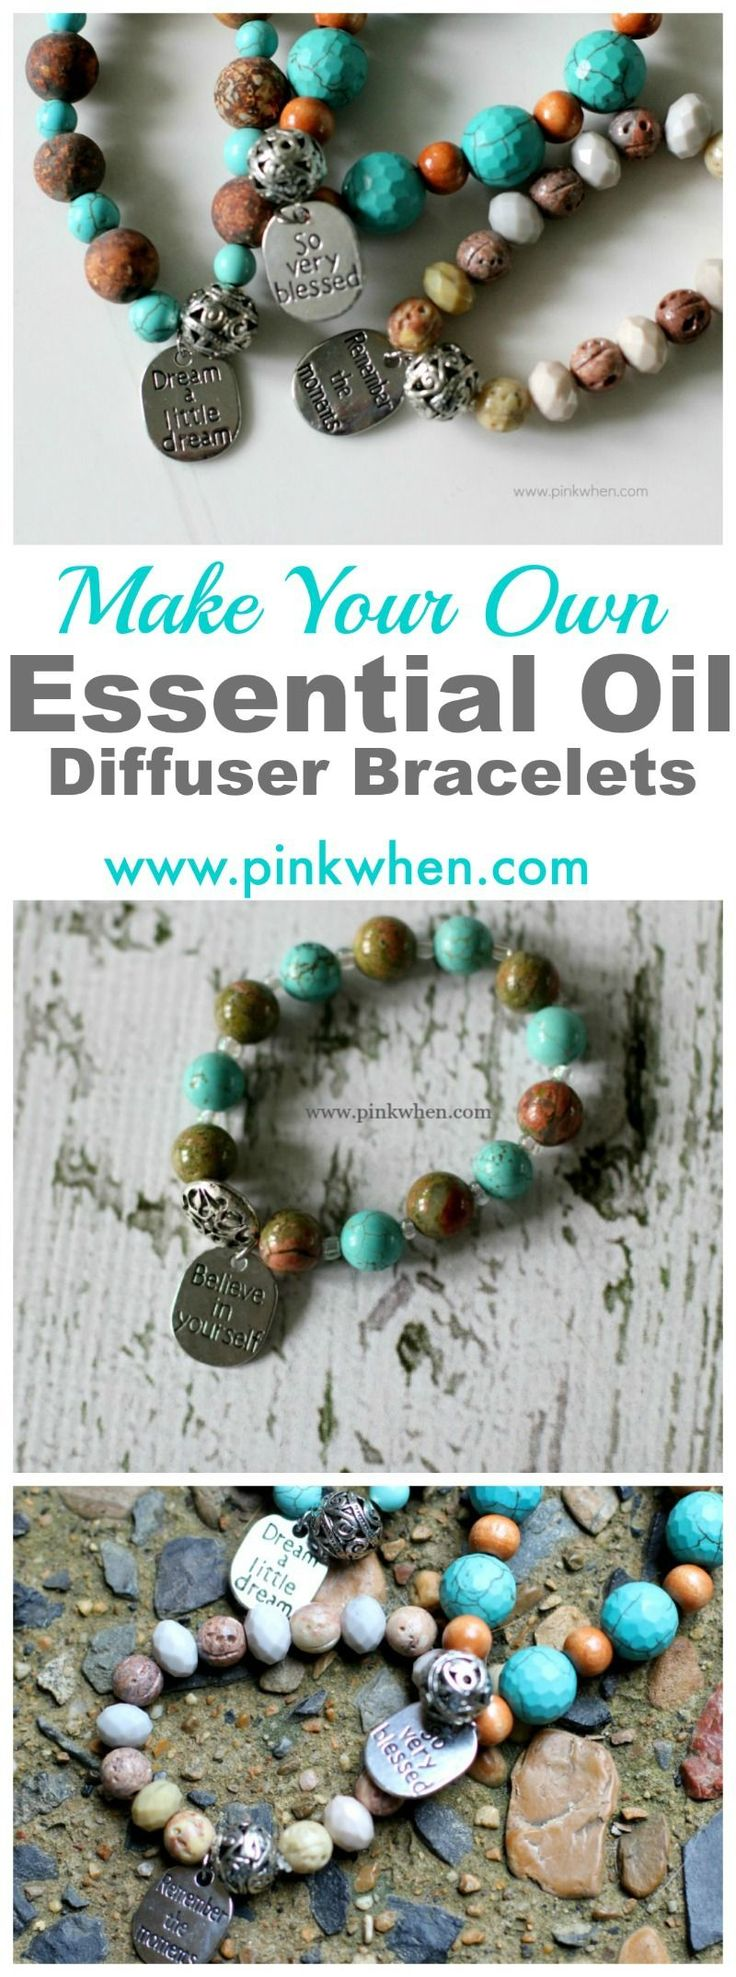 How to make your own Essential Oil Diffuser bracelets. Perfect for Make n Take classes, too!